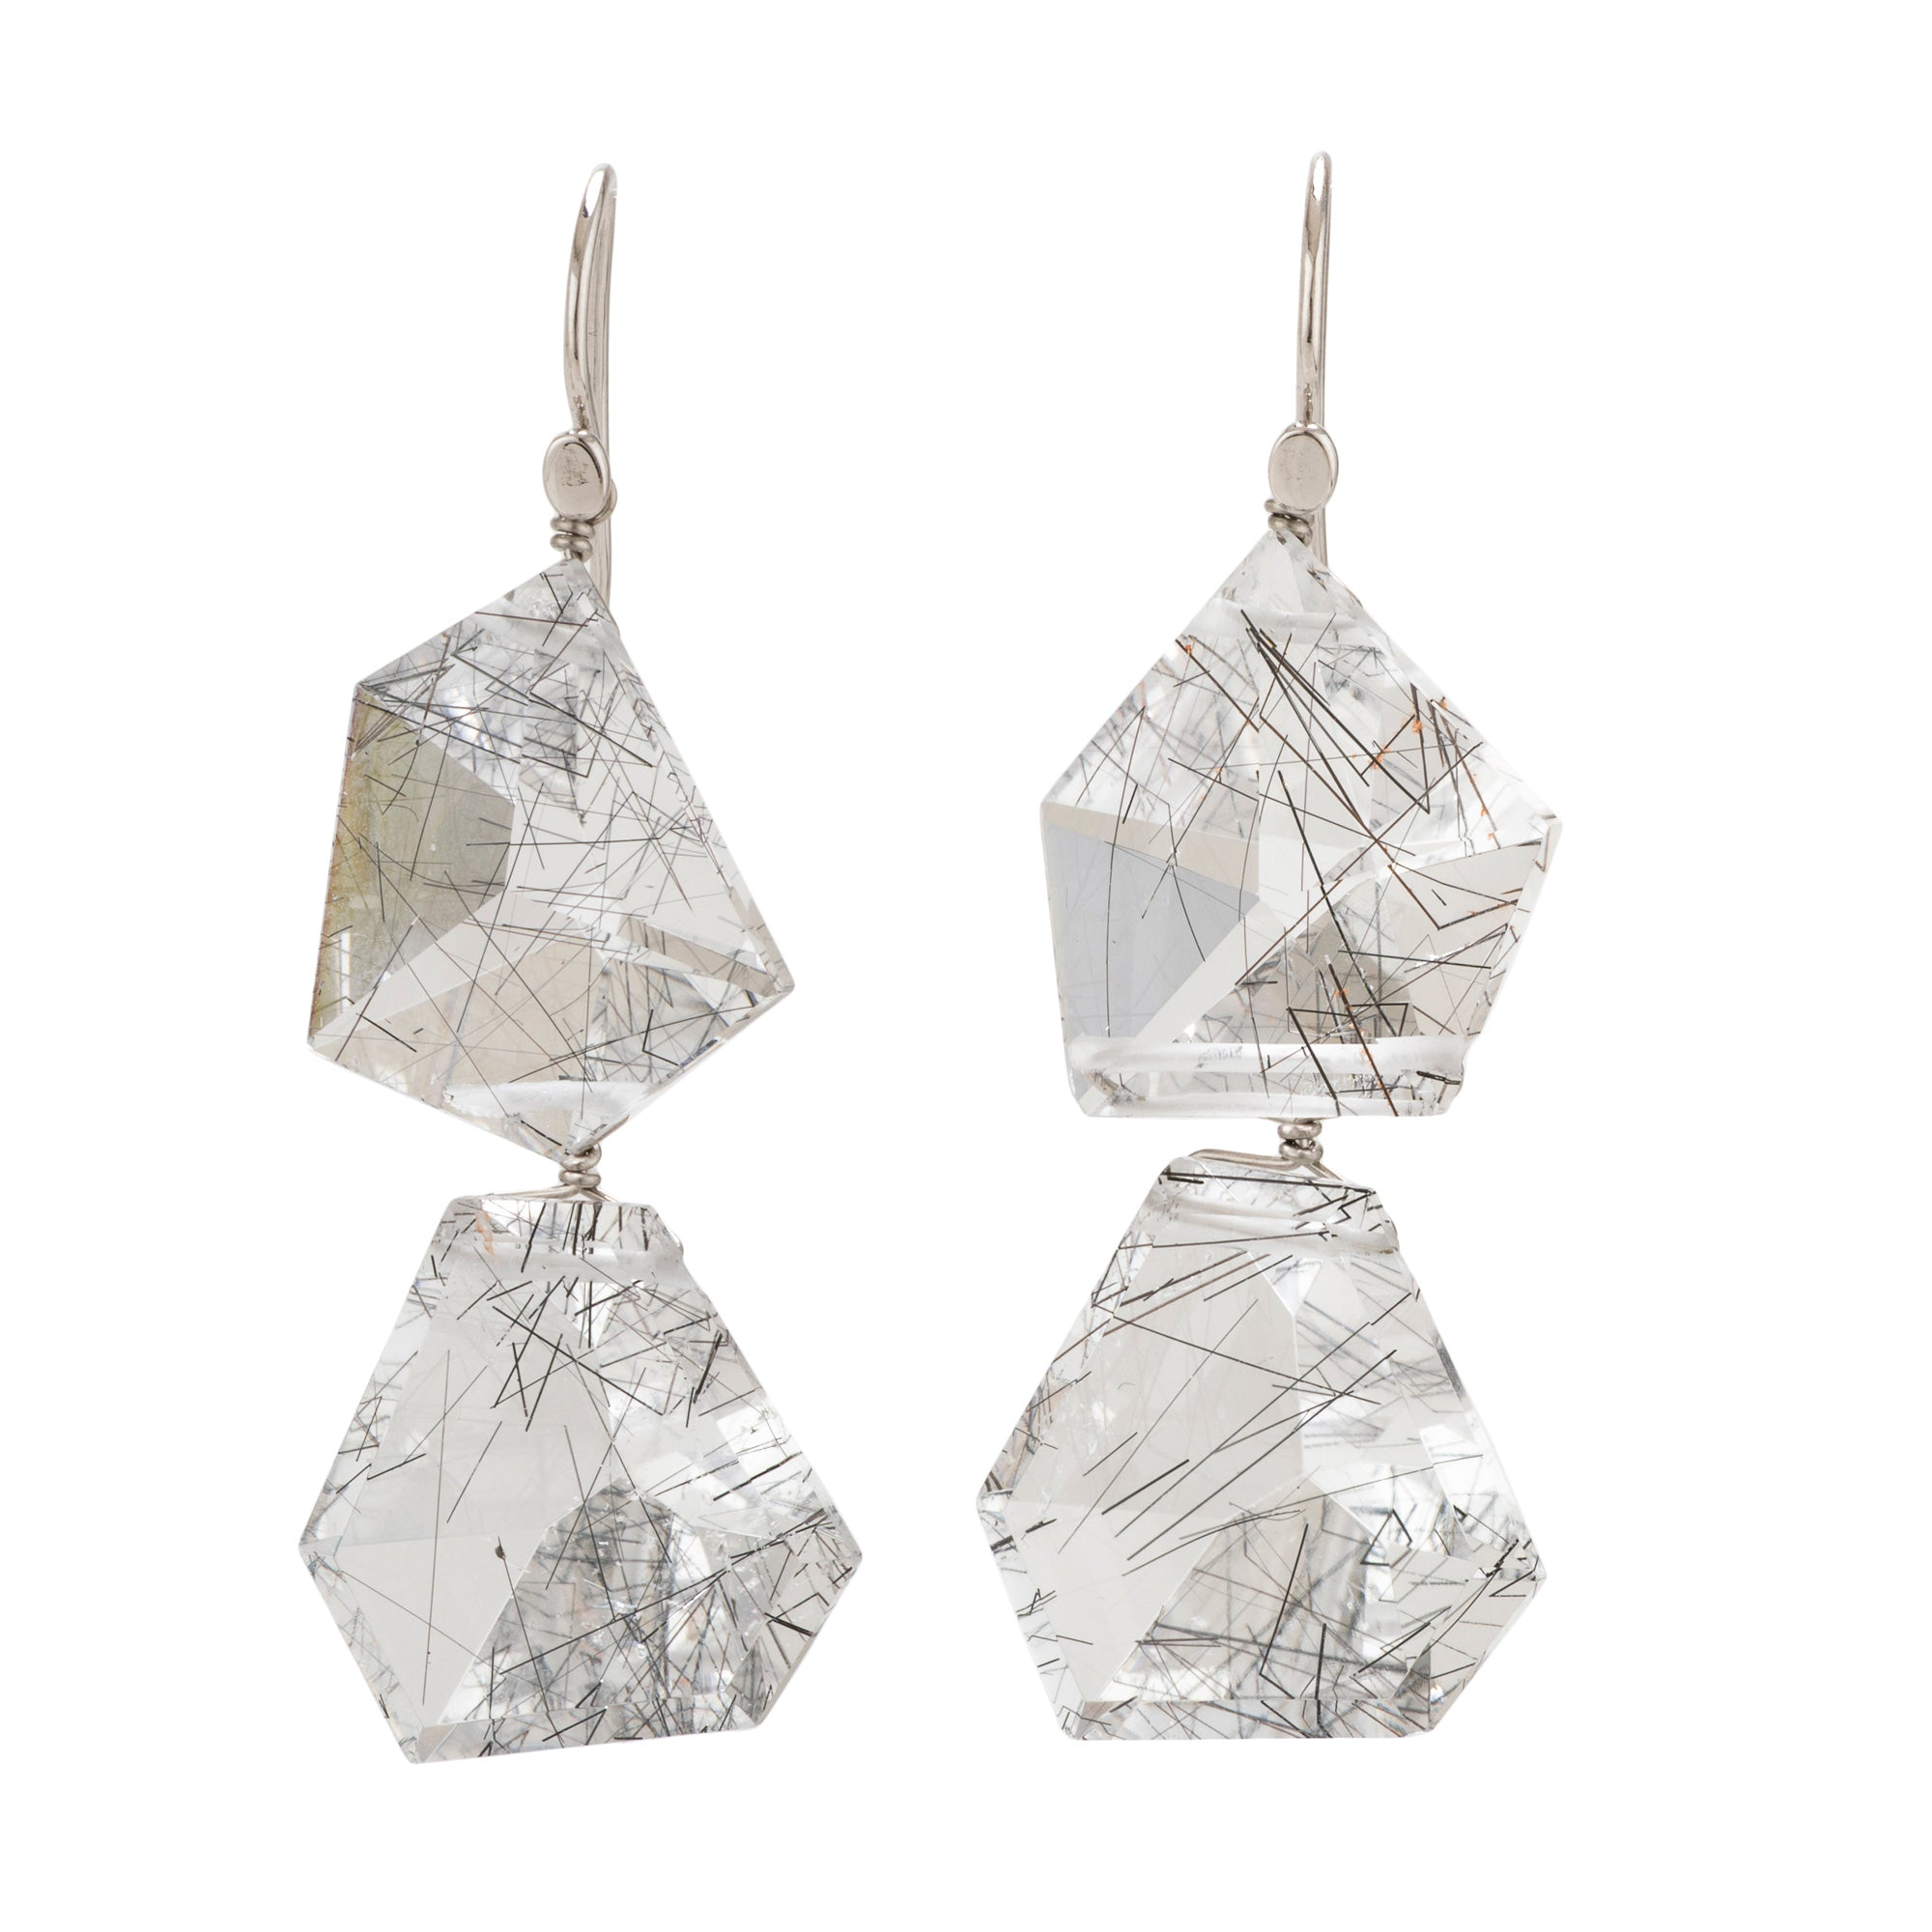 Freeform ii quartz earrings